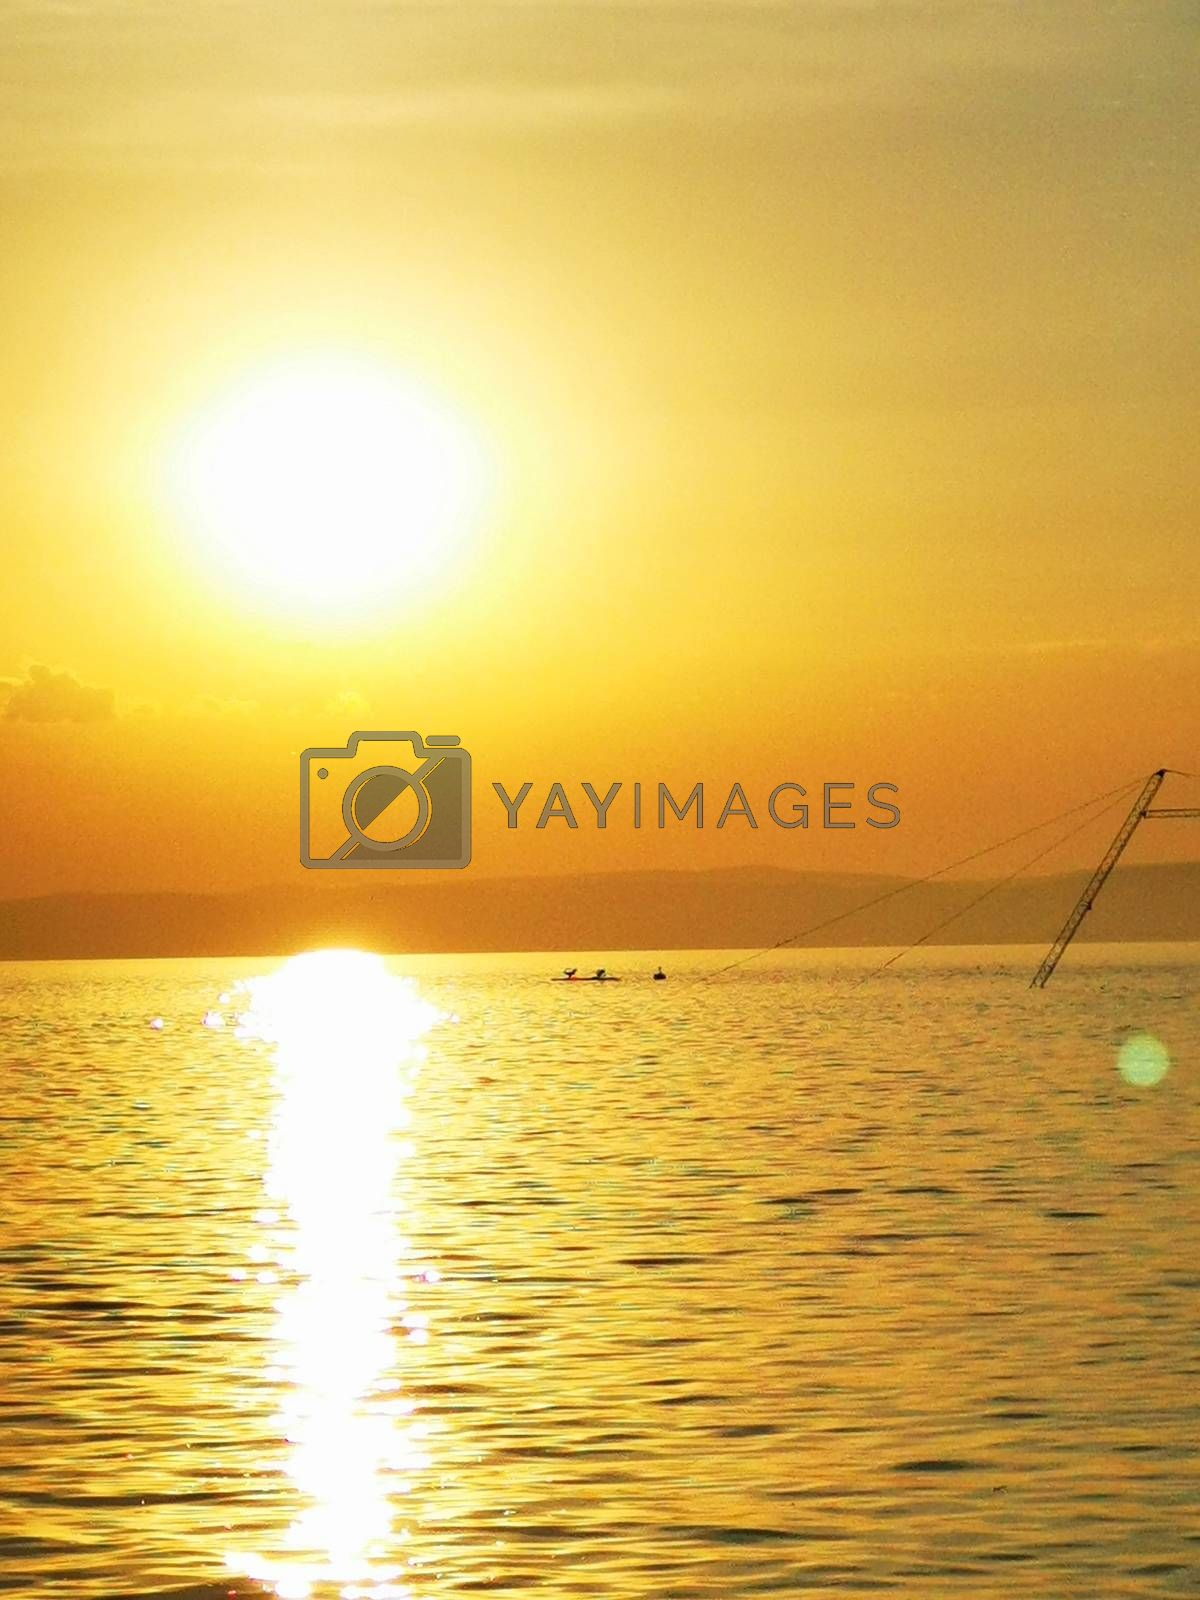 Royalty free image of A sunset over a body of water by balage941